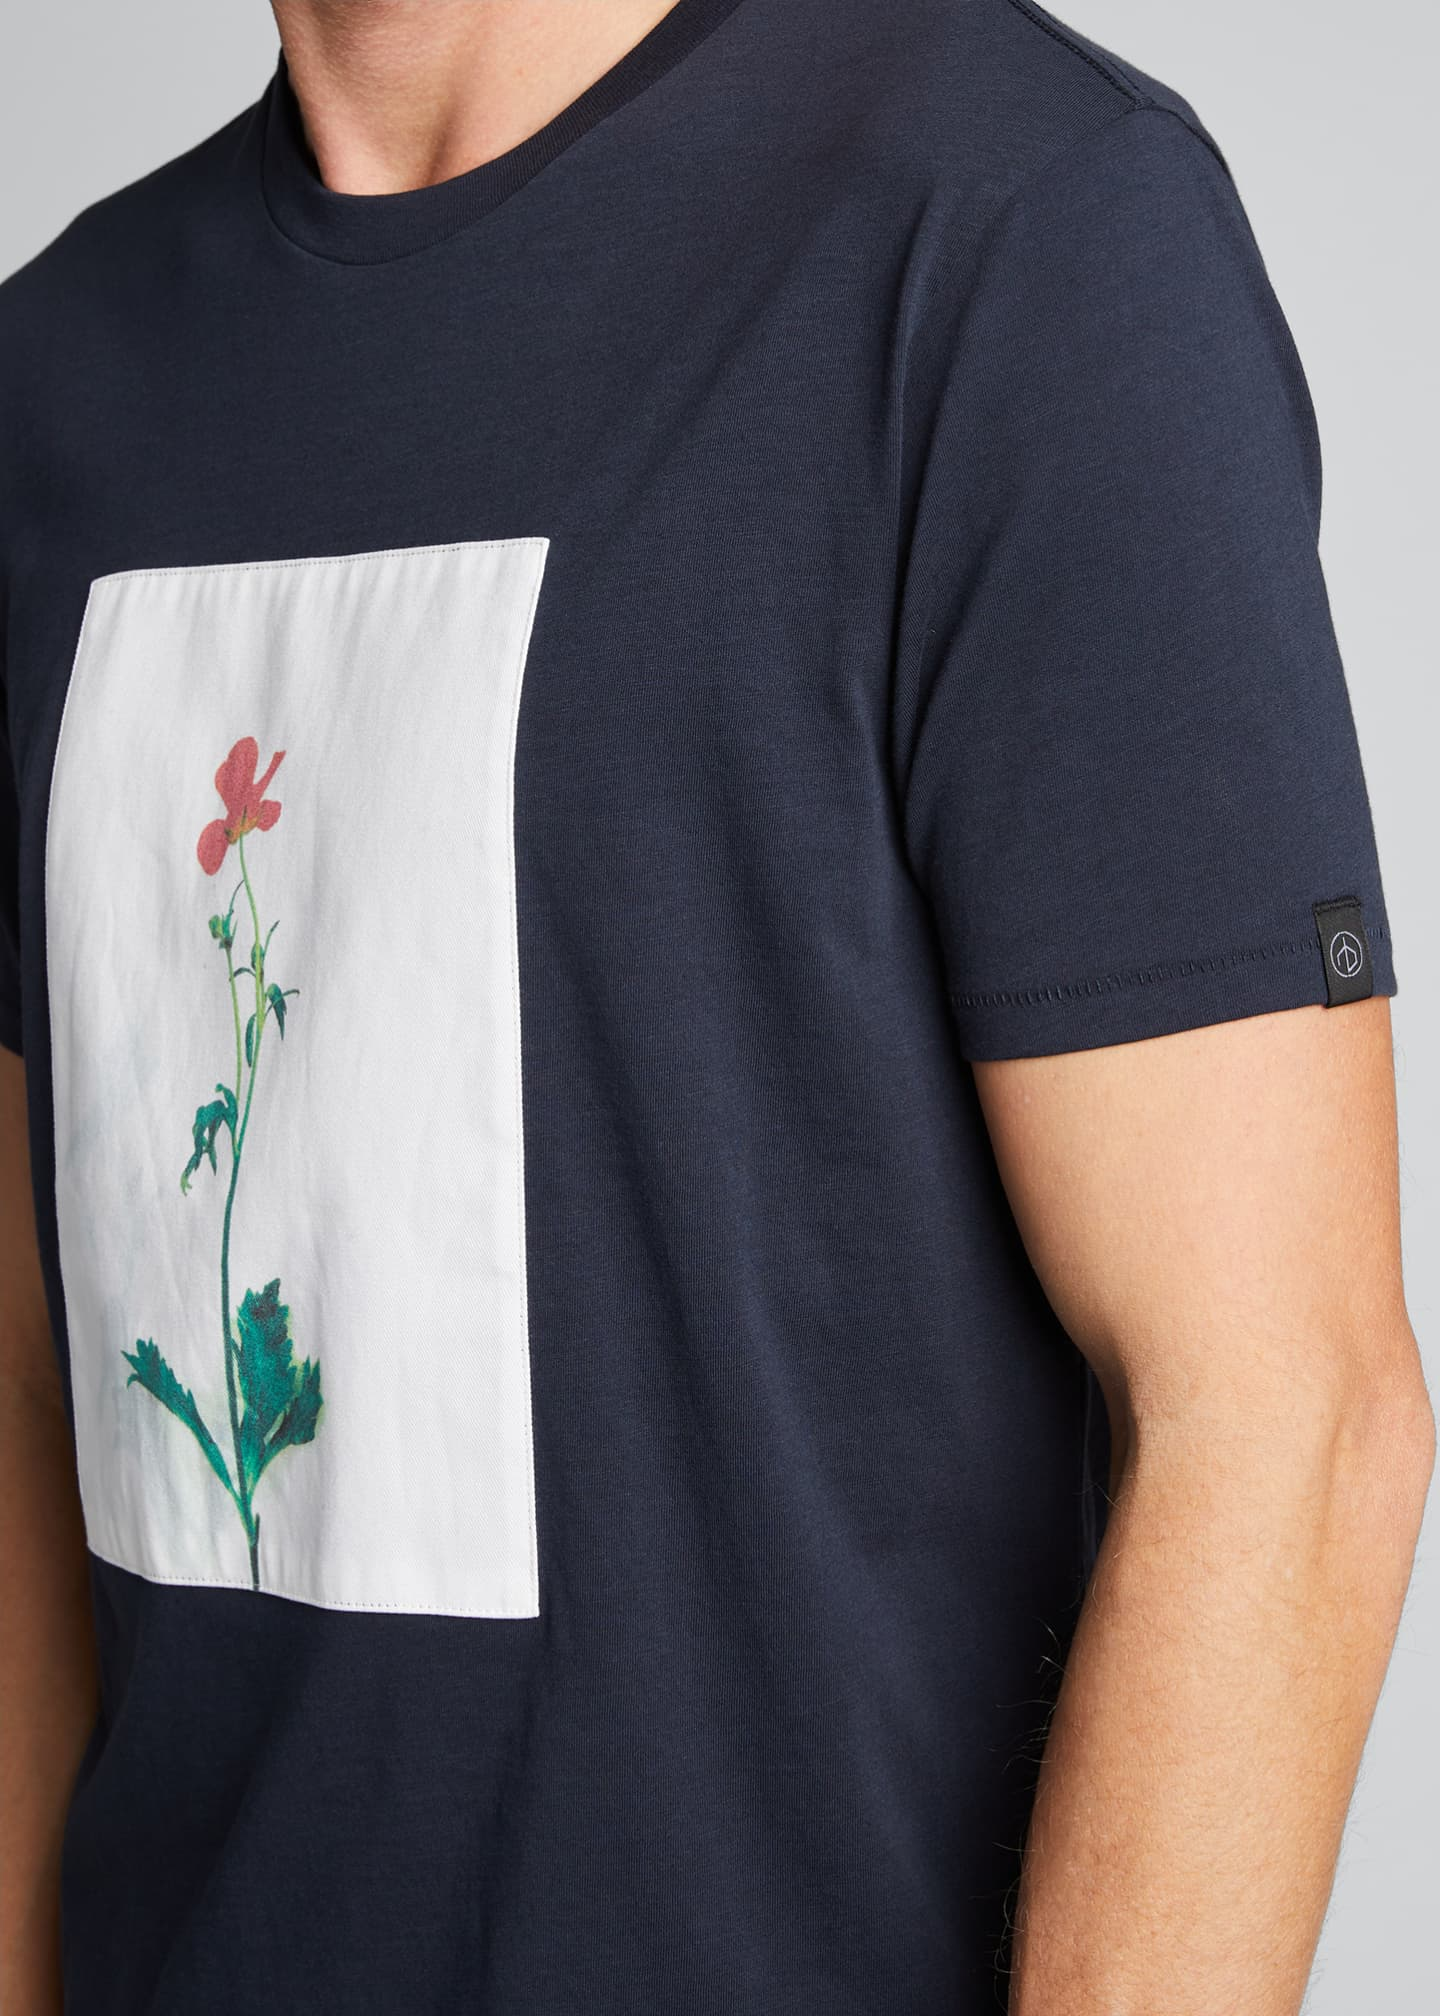 Image 4 of 5: Men's Flower Graphic T-Shirt